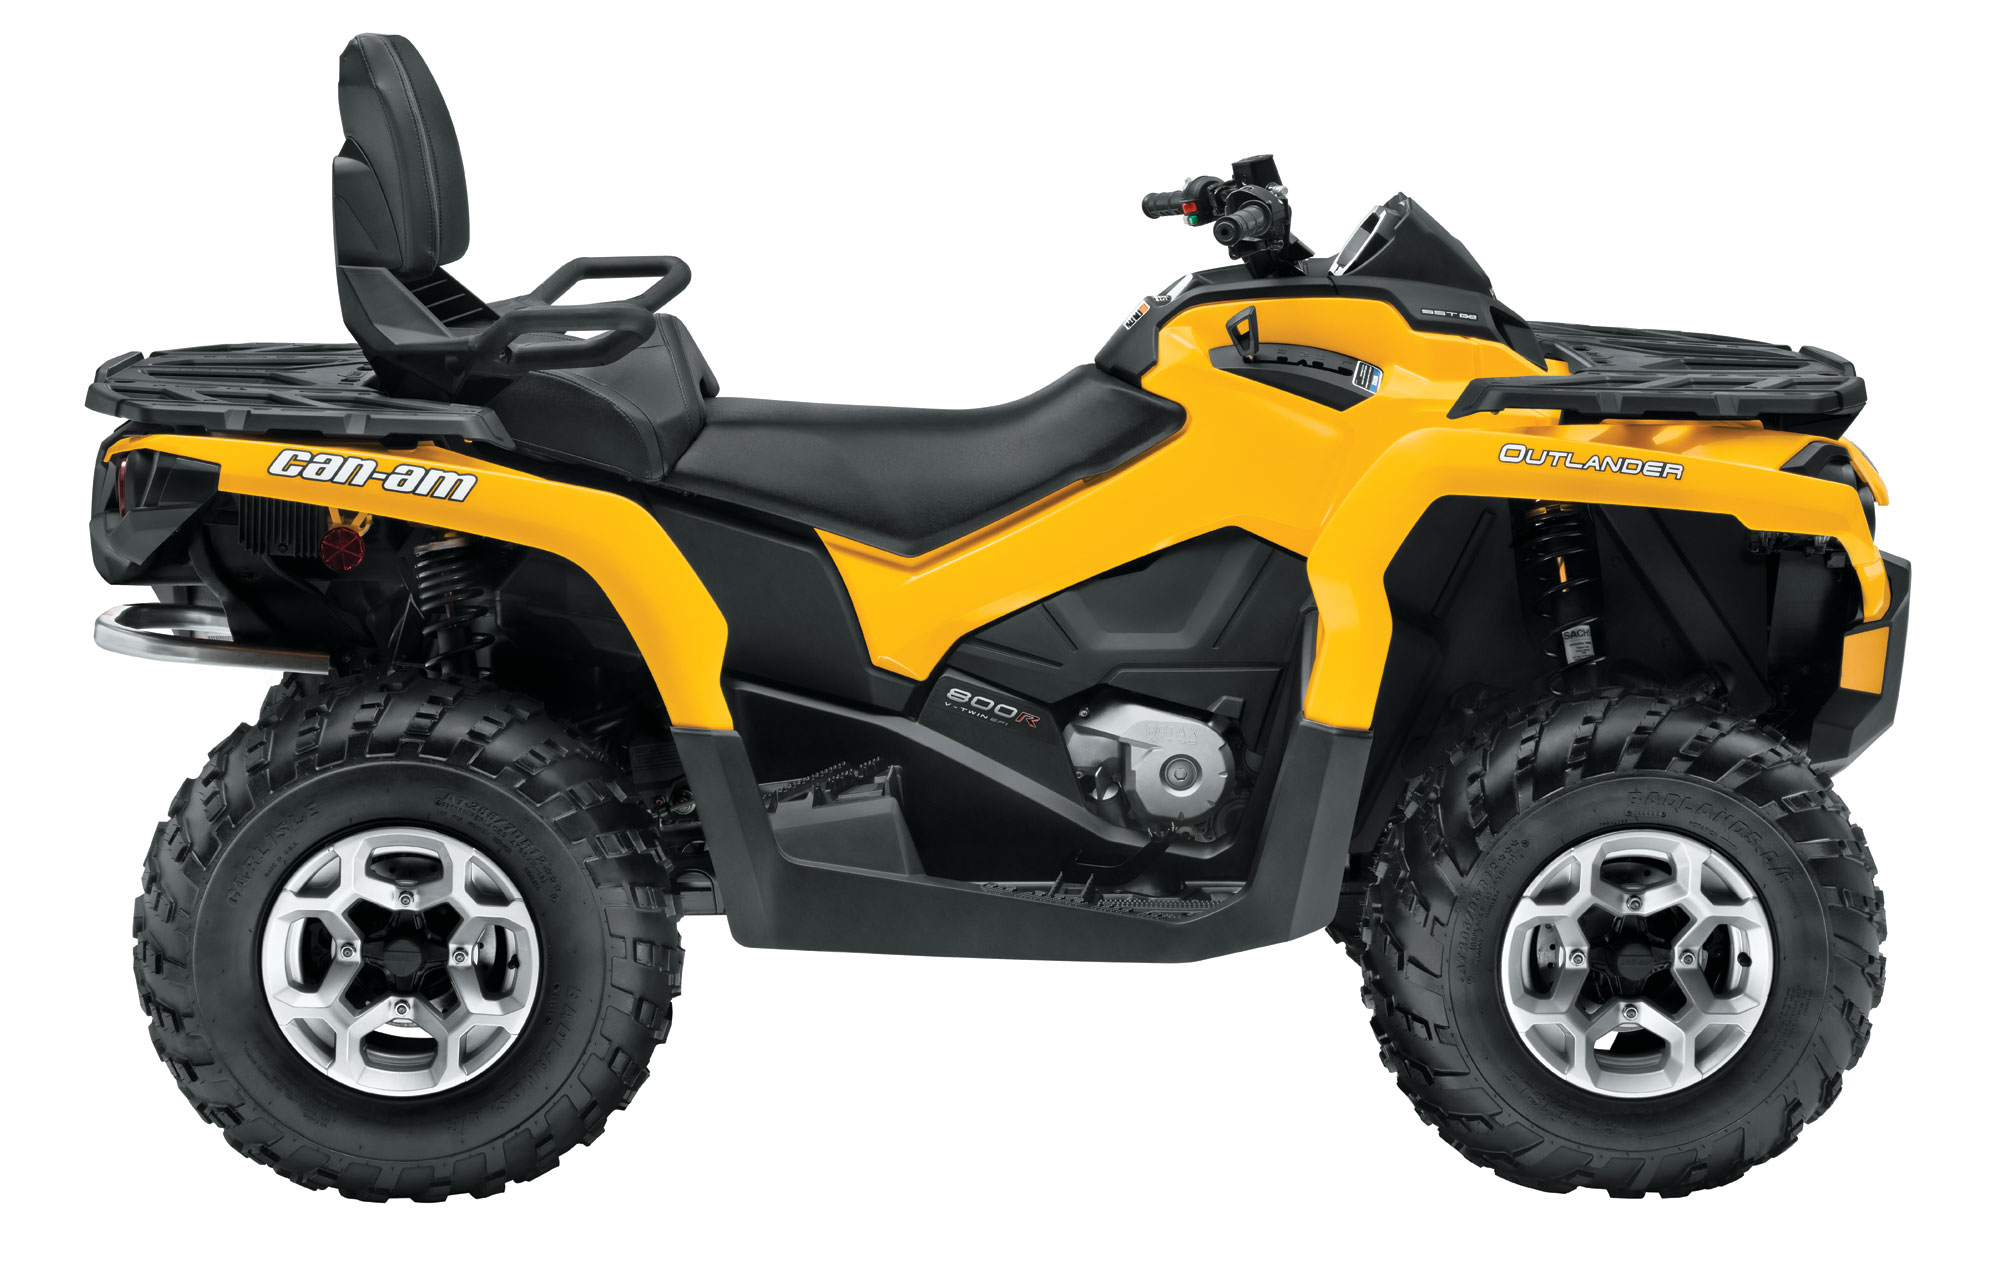 2013 can am outlander max dps 800r review. Black Bedroom Furniture Sets. Home Design Ideas